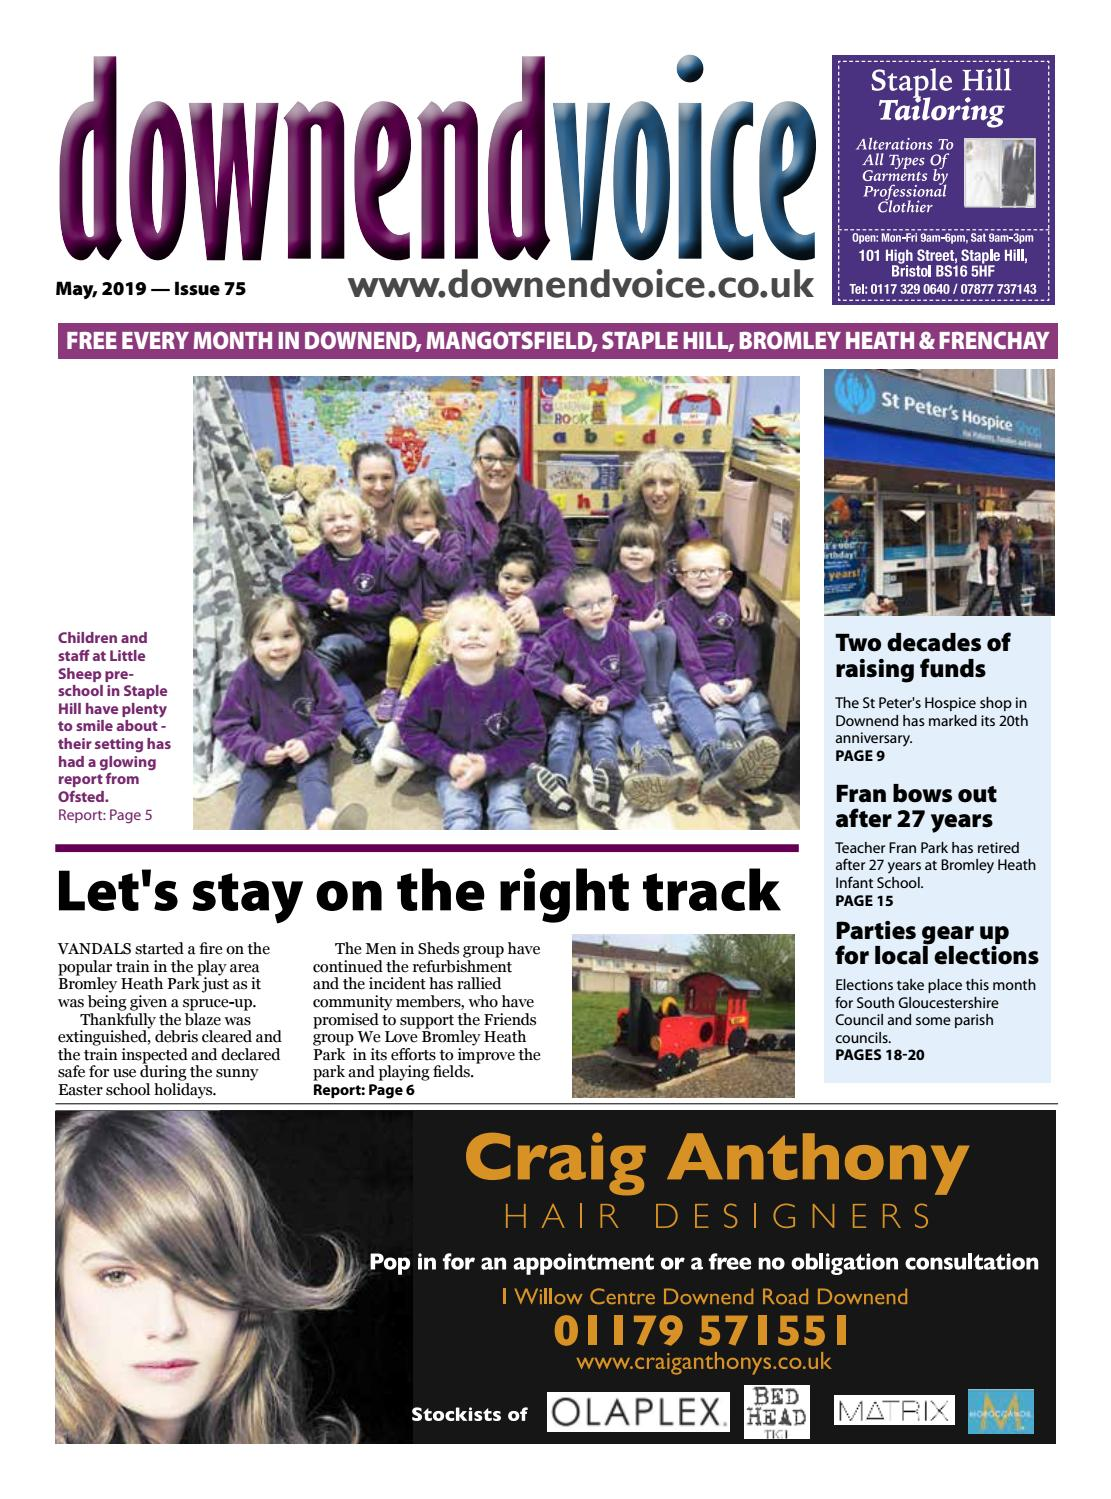 Downend Voice May 2019 by Gary Brindle - issuu